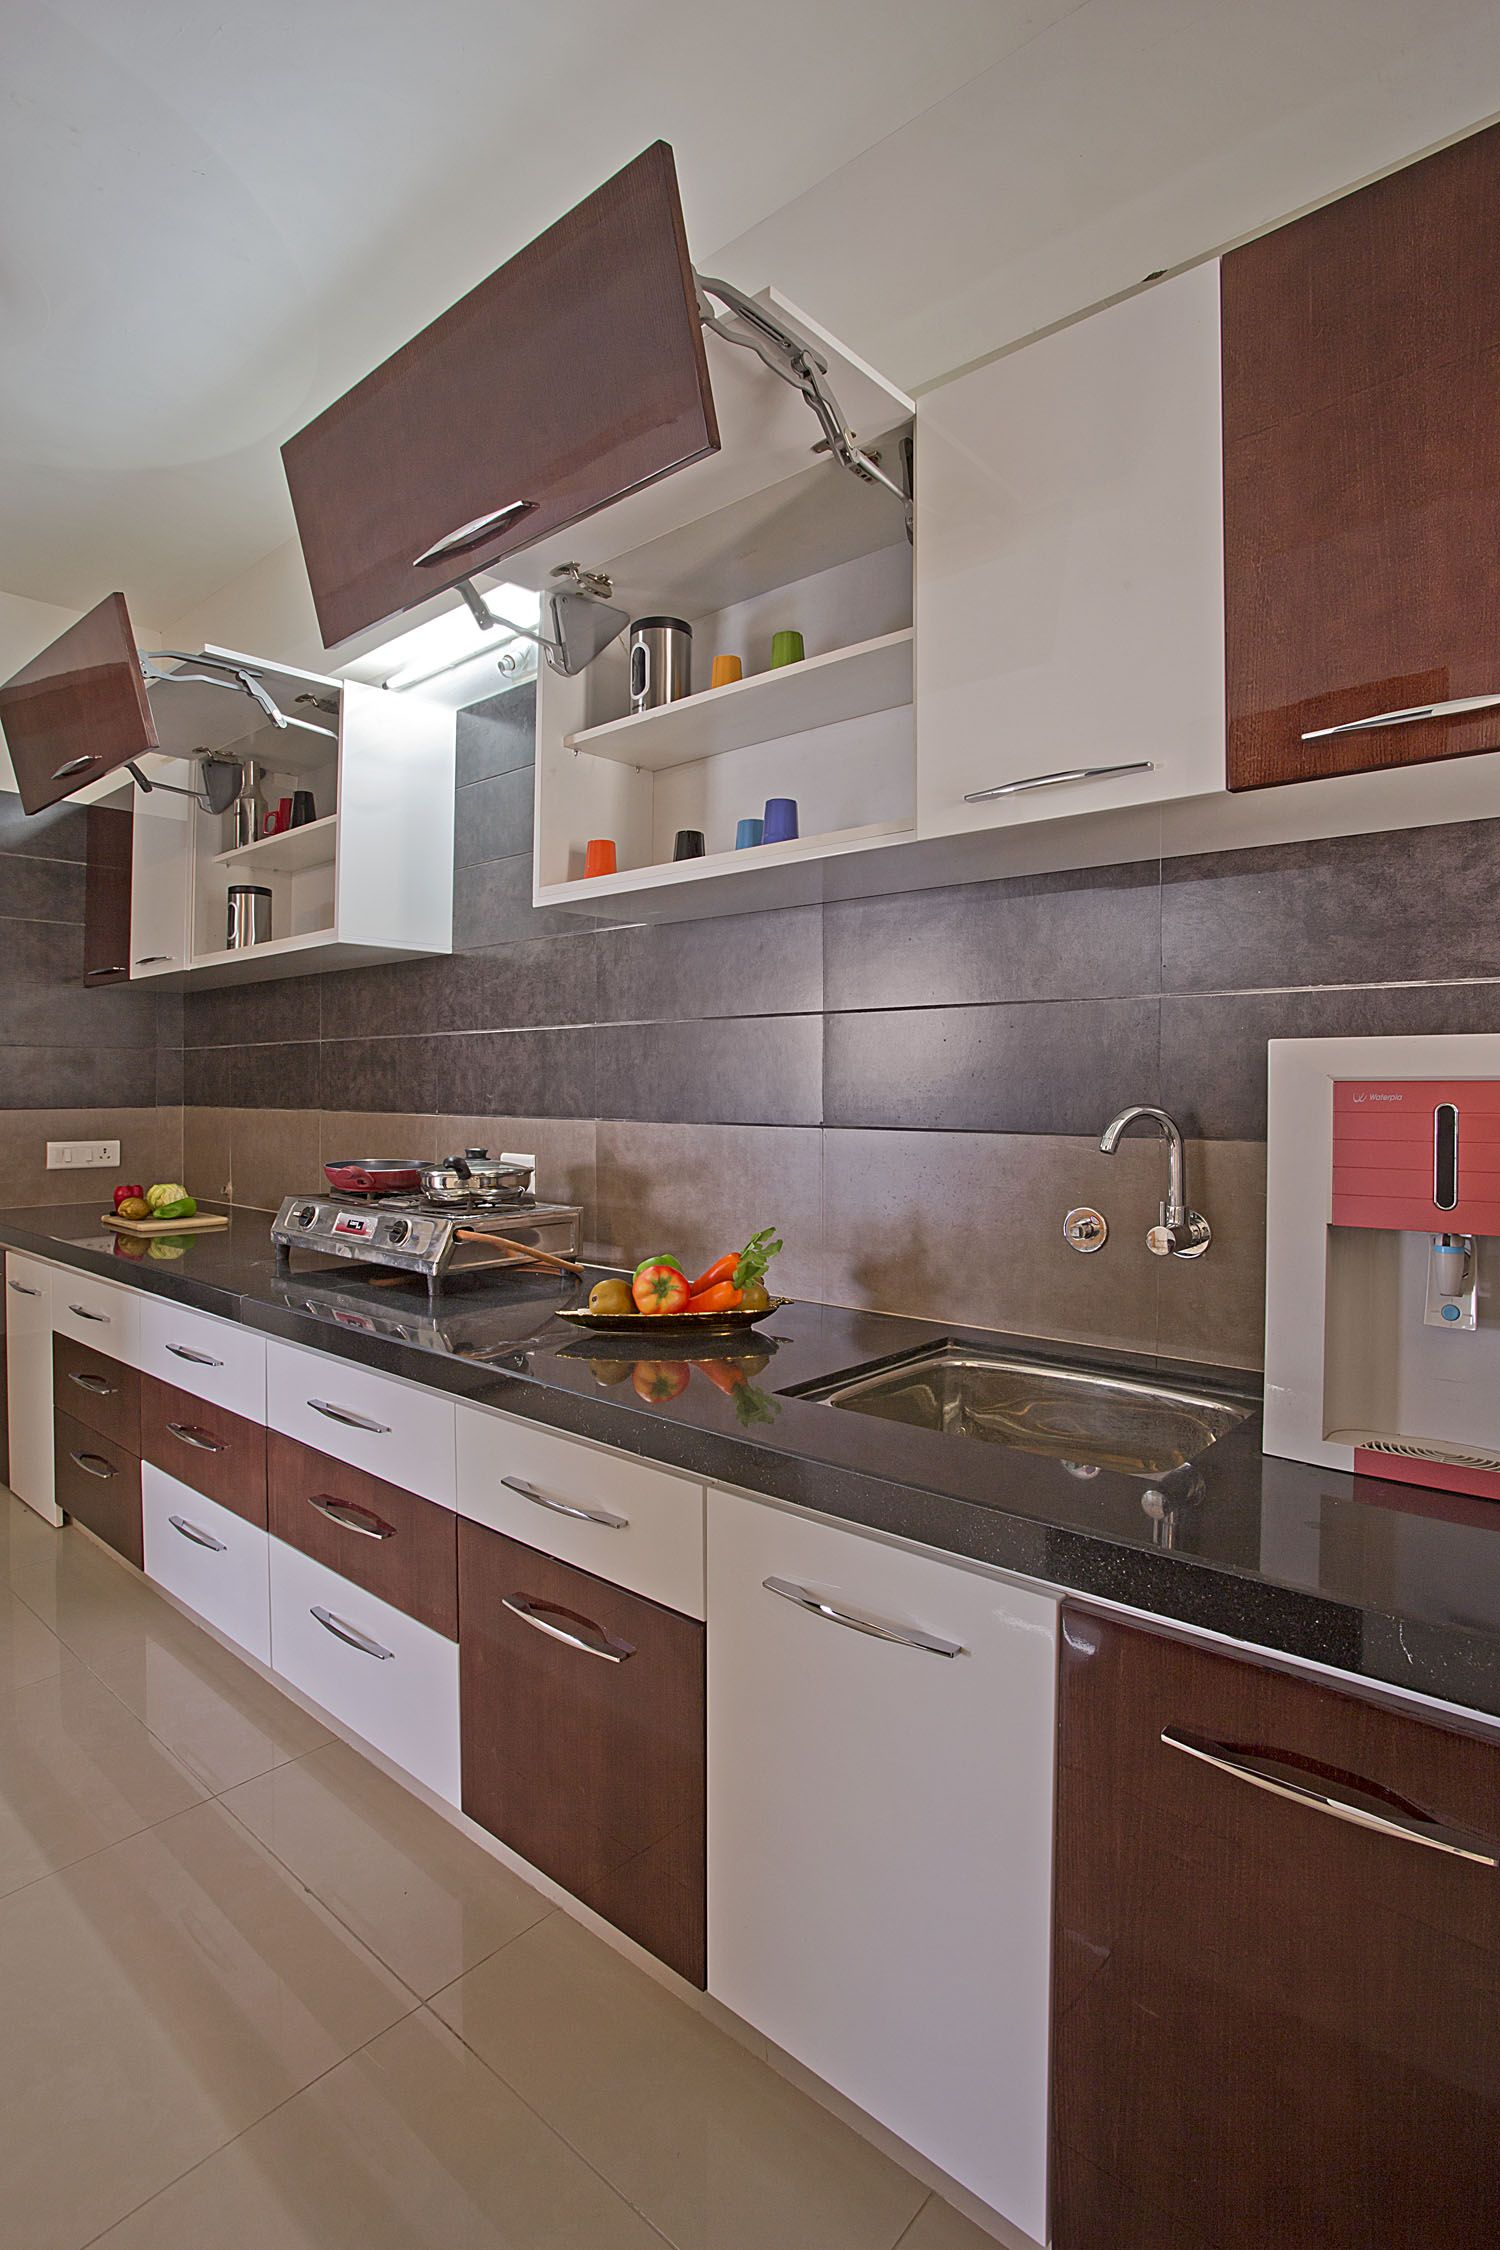 The most asked need for modular kitchen designs is space. In small space,  we have to come up with spacious ideas, which we call storage.